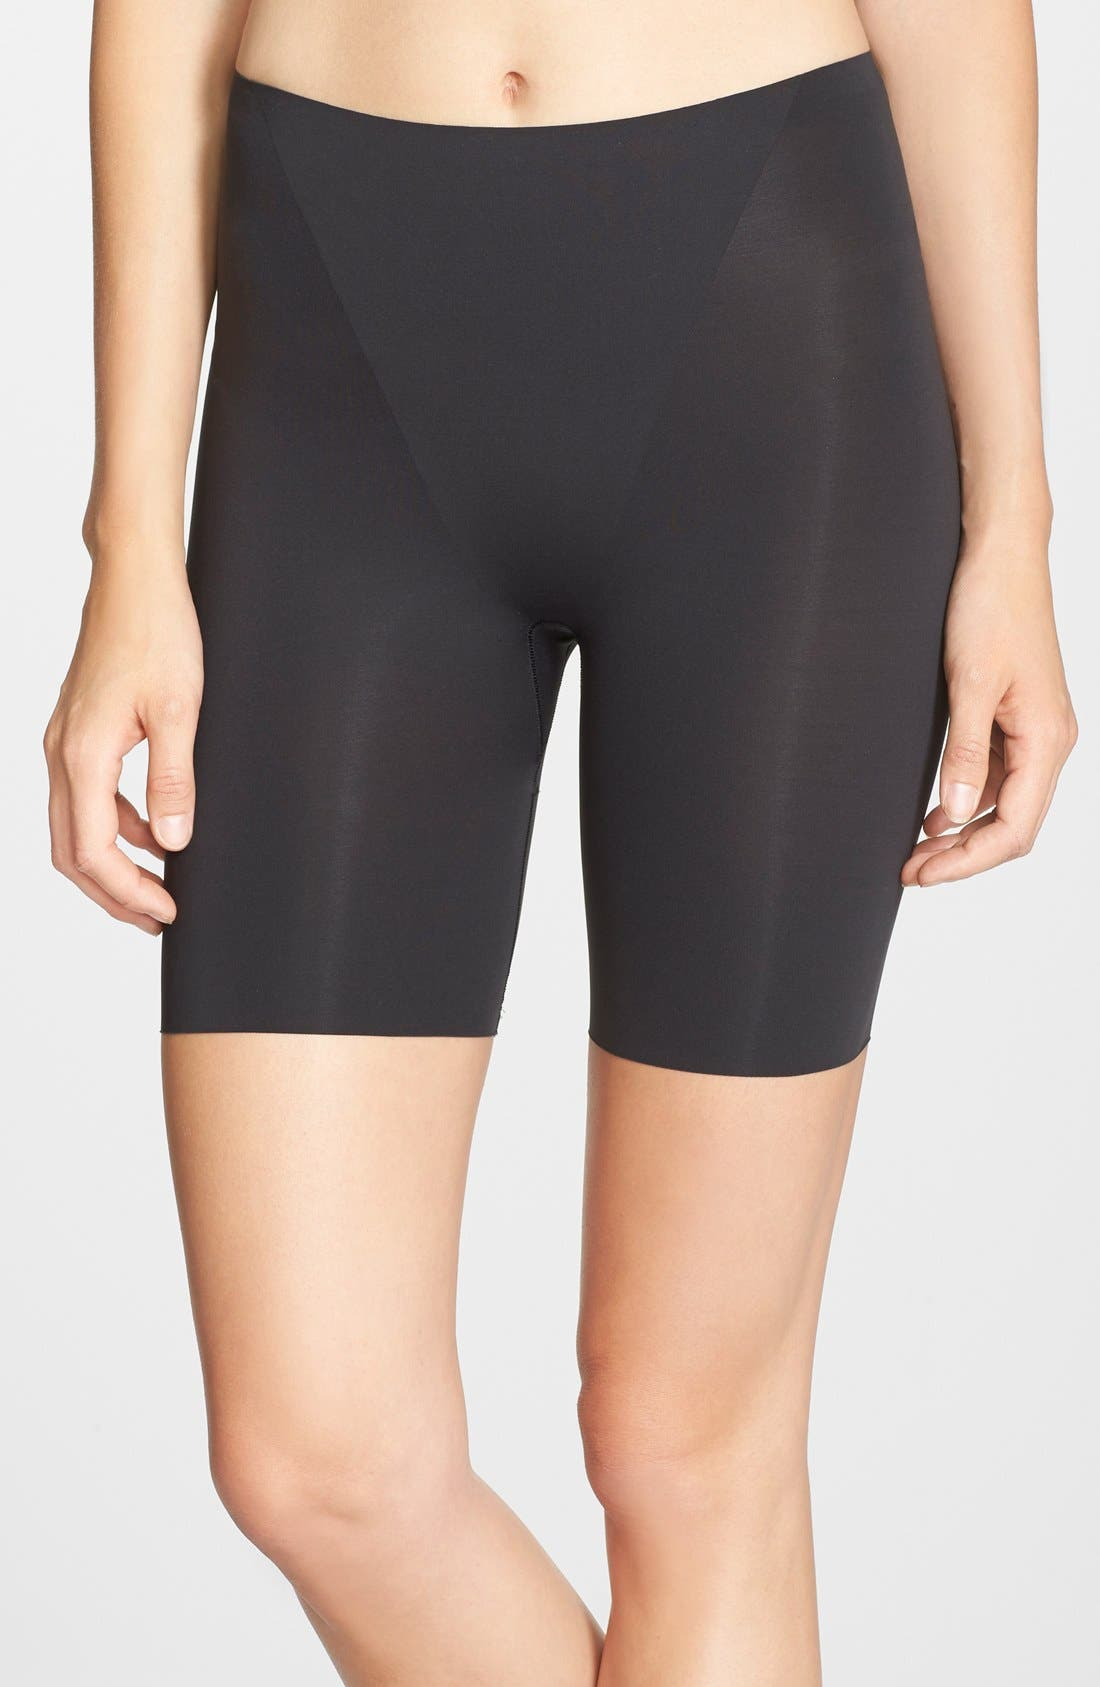 Main Image - SPANX® 'Trust Your Thinstincts' Mid Thigh Shaper